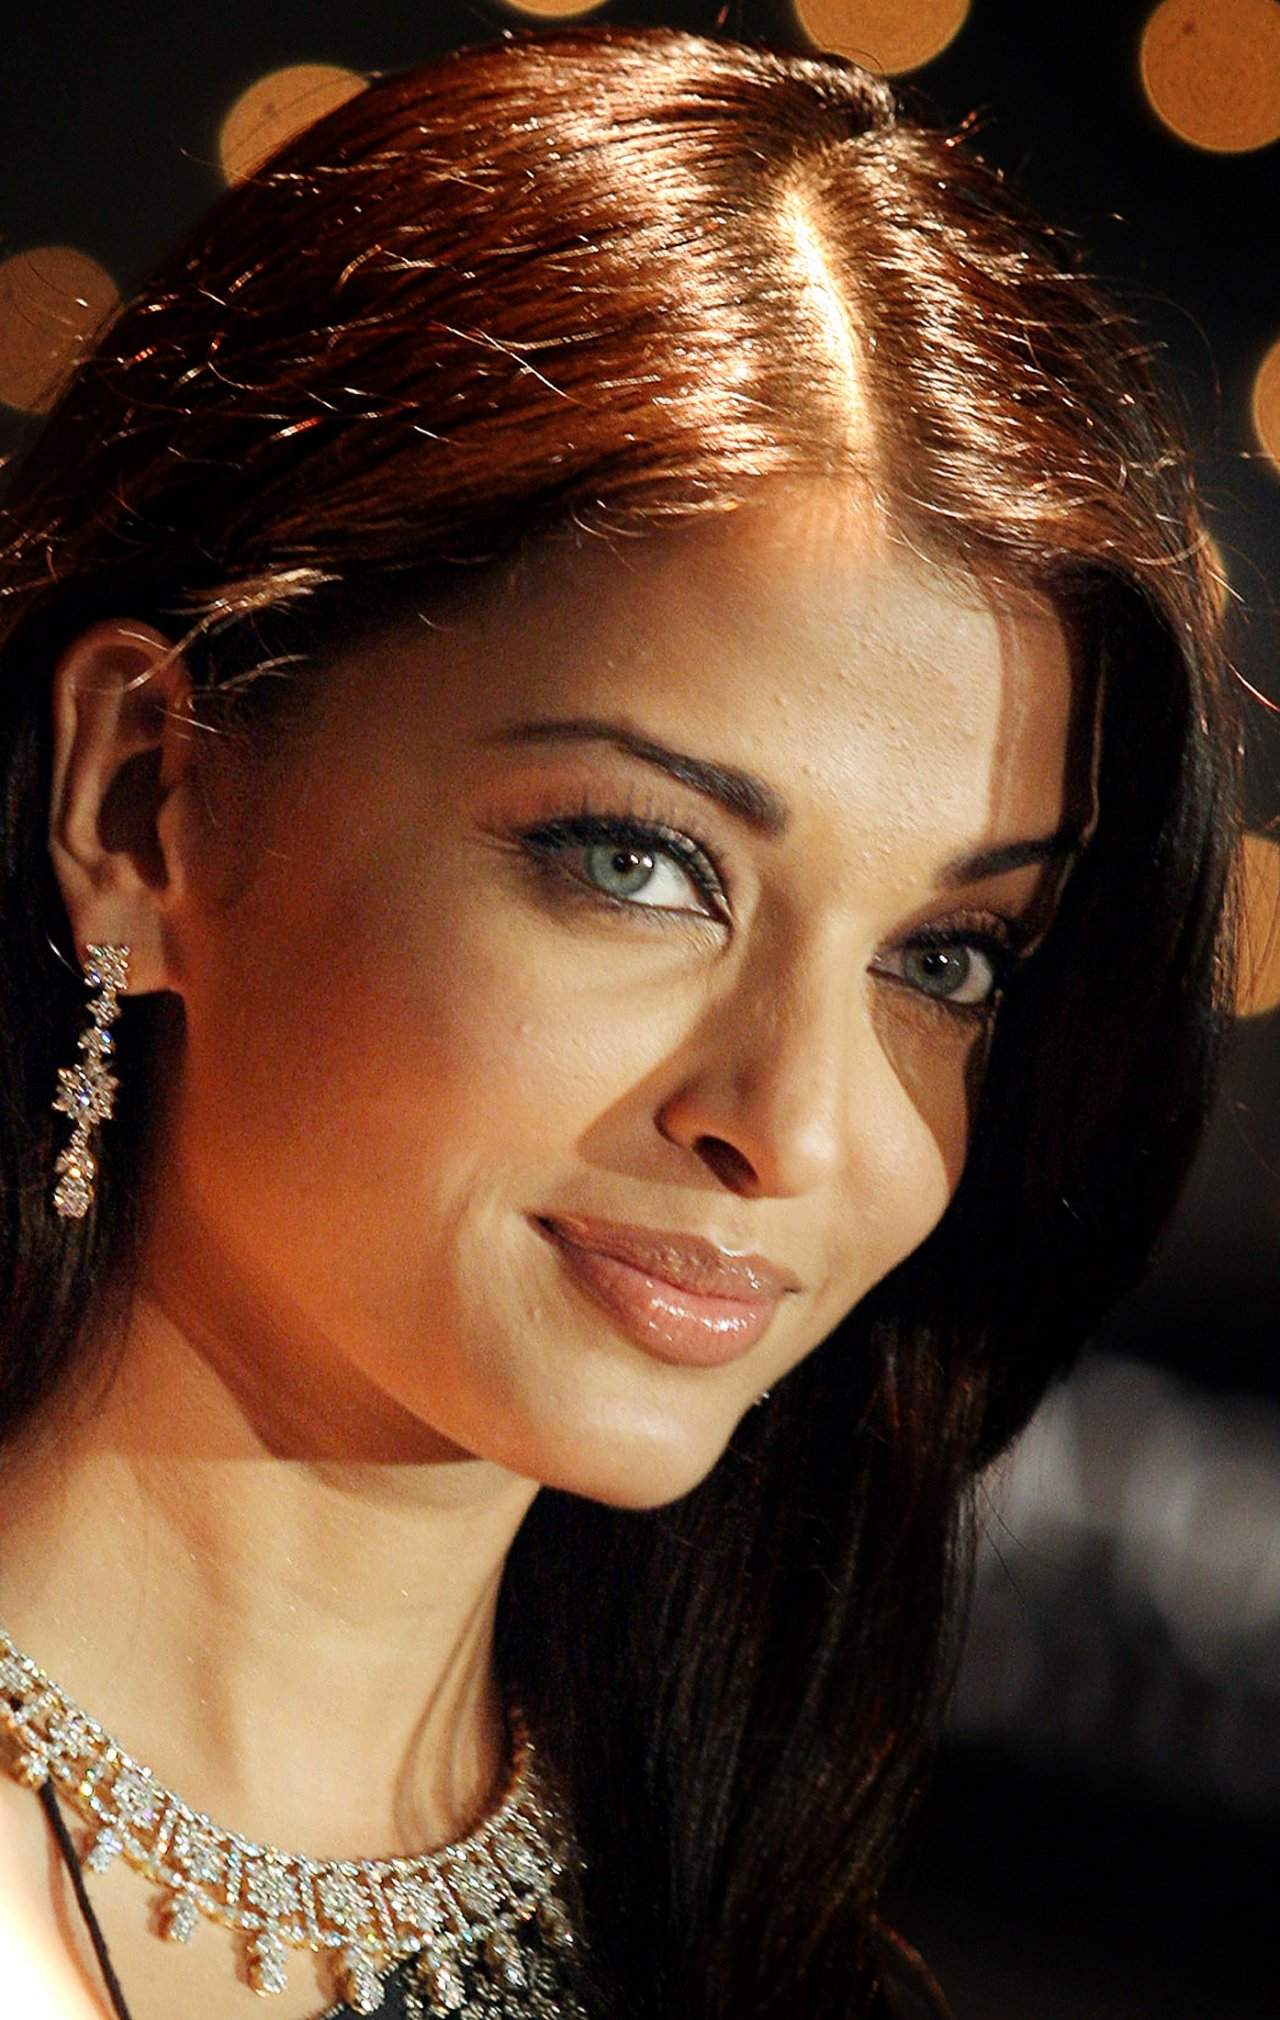 Bollywood Actress - Aishwarya Rai, Kareena Kapoor